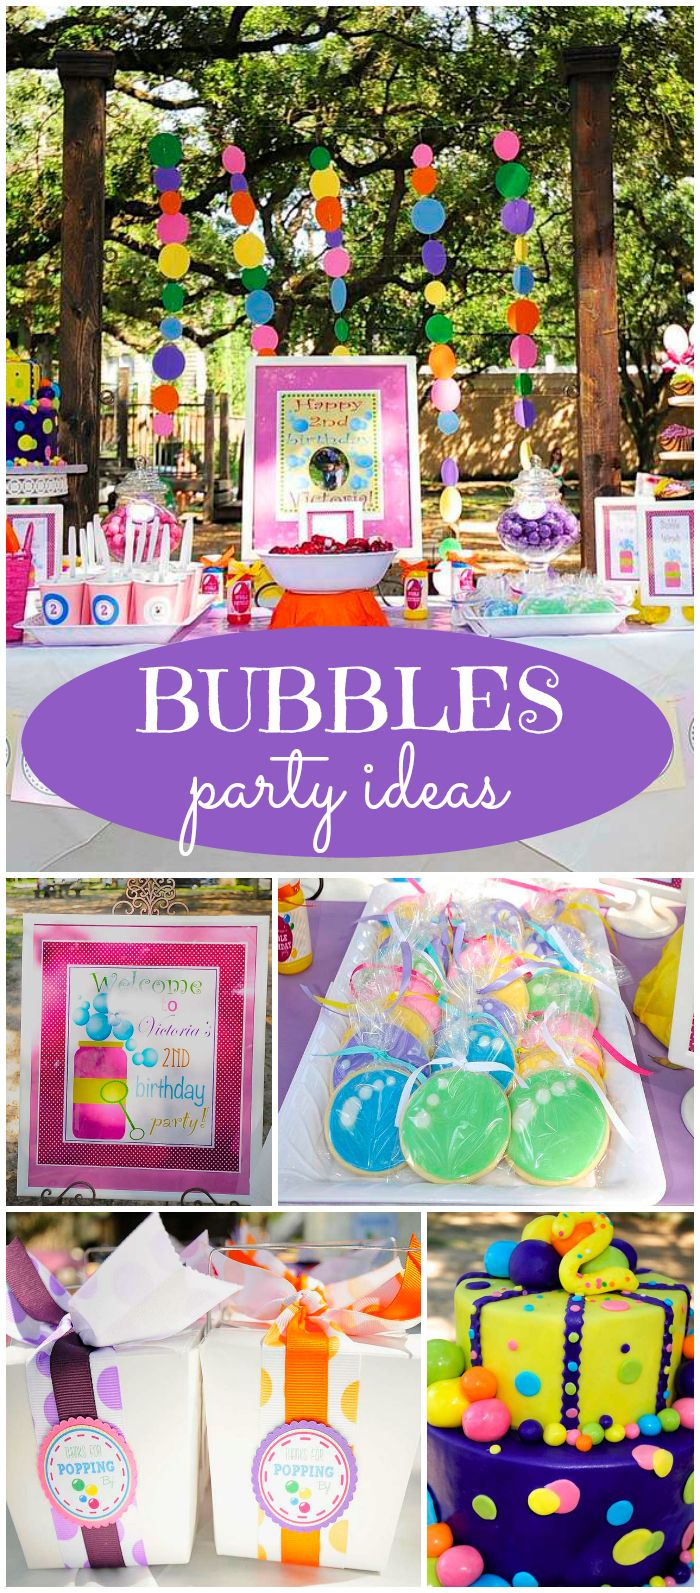 "bubbles / birthday ""victoria's bubbles themed 2nd birthday party"